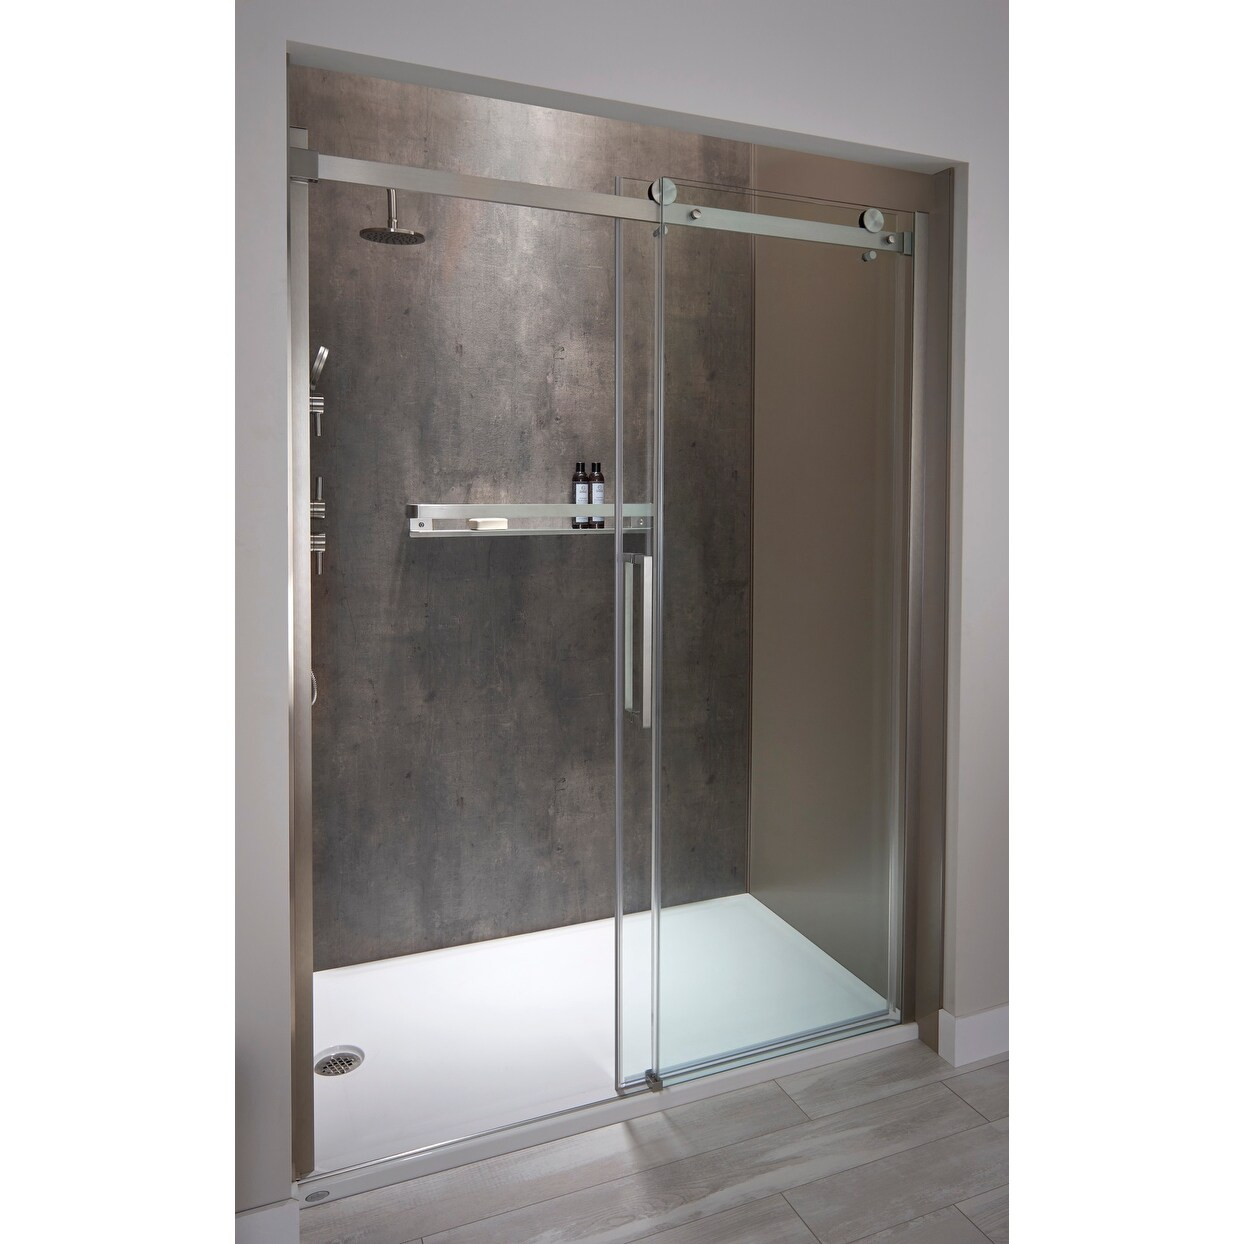 Jacuzzi Sx60 79 High X 60 Wide Sliding Semi Frameless Shower Door With Clear Glass